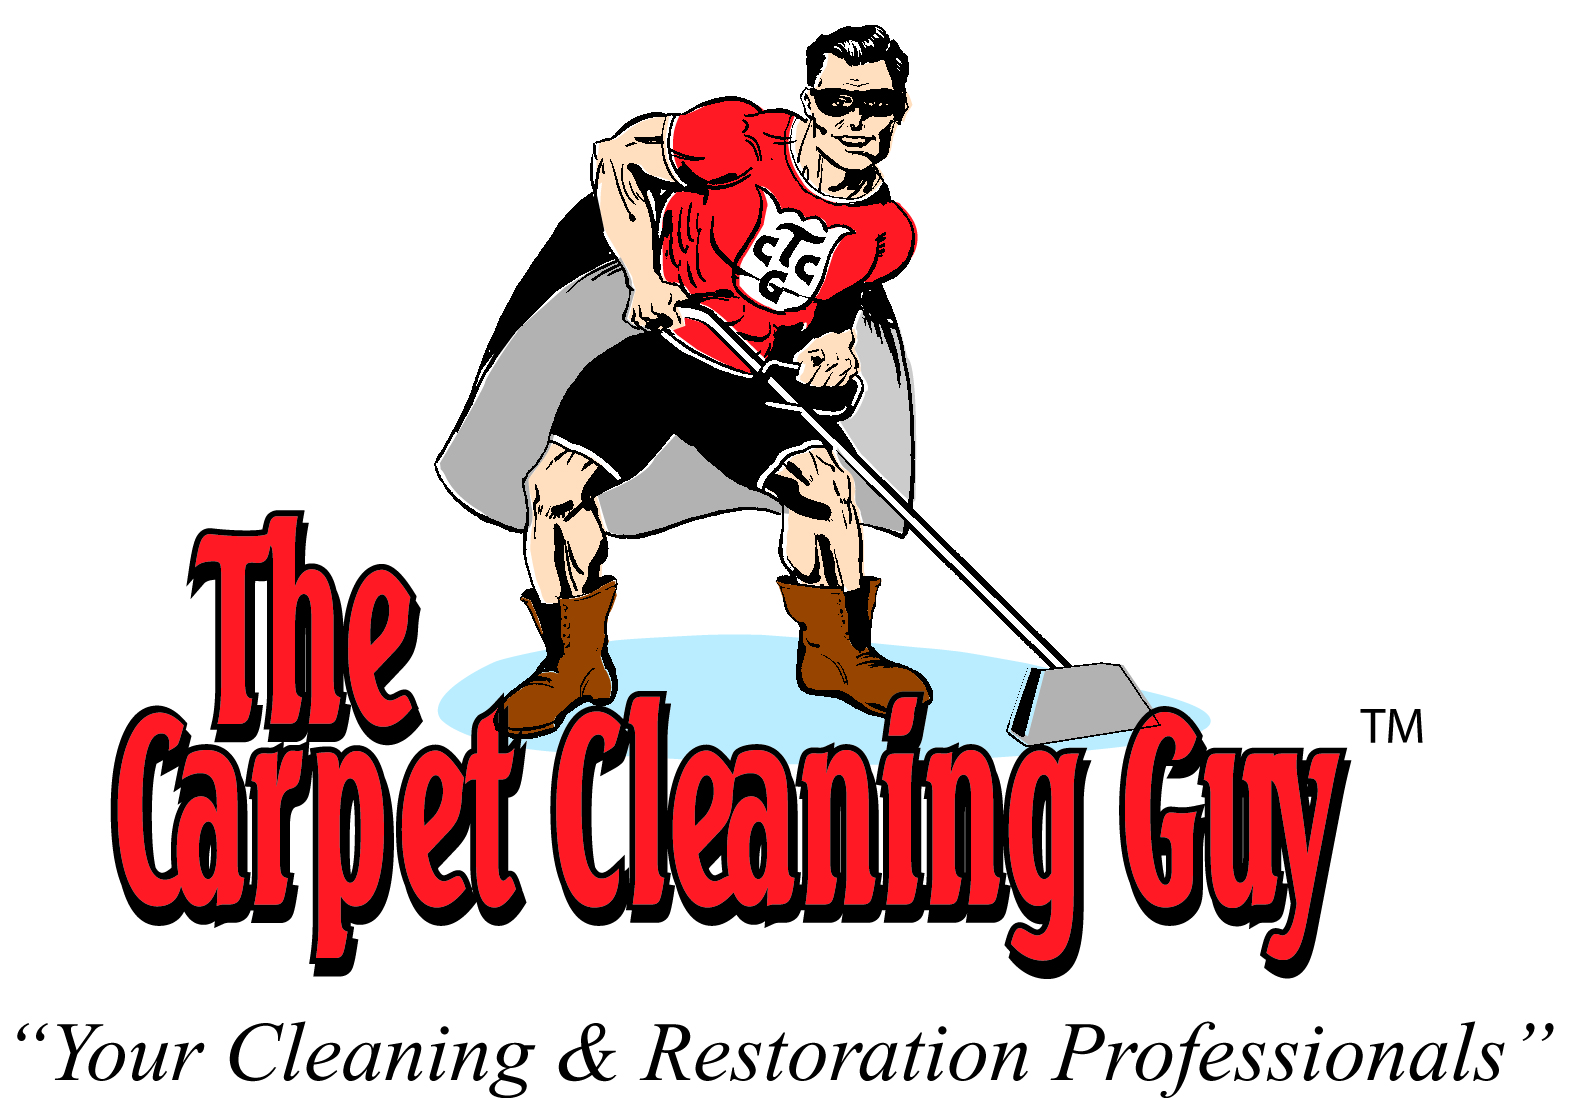 The Carpet Cleaning Guy